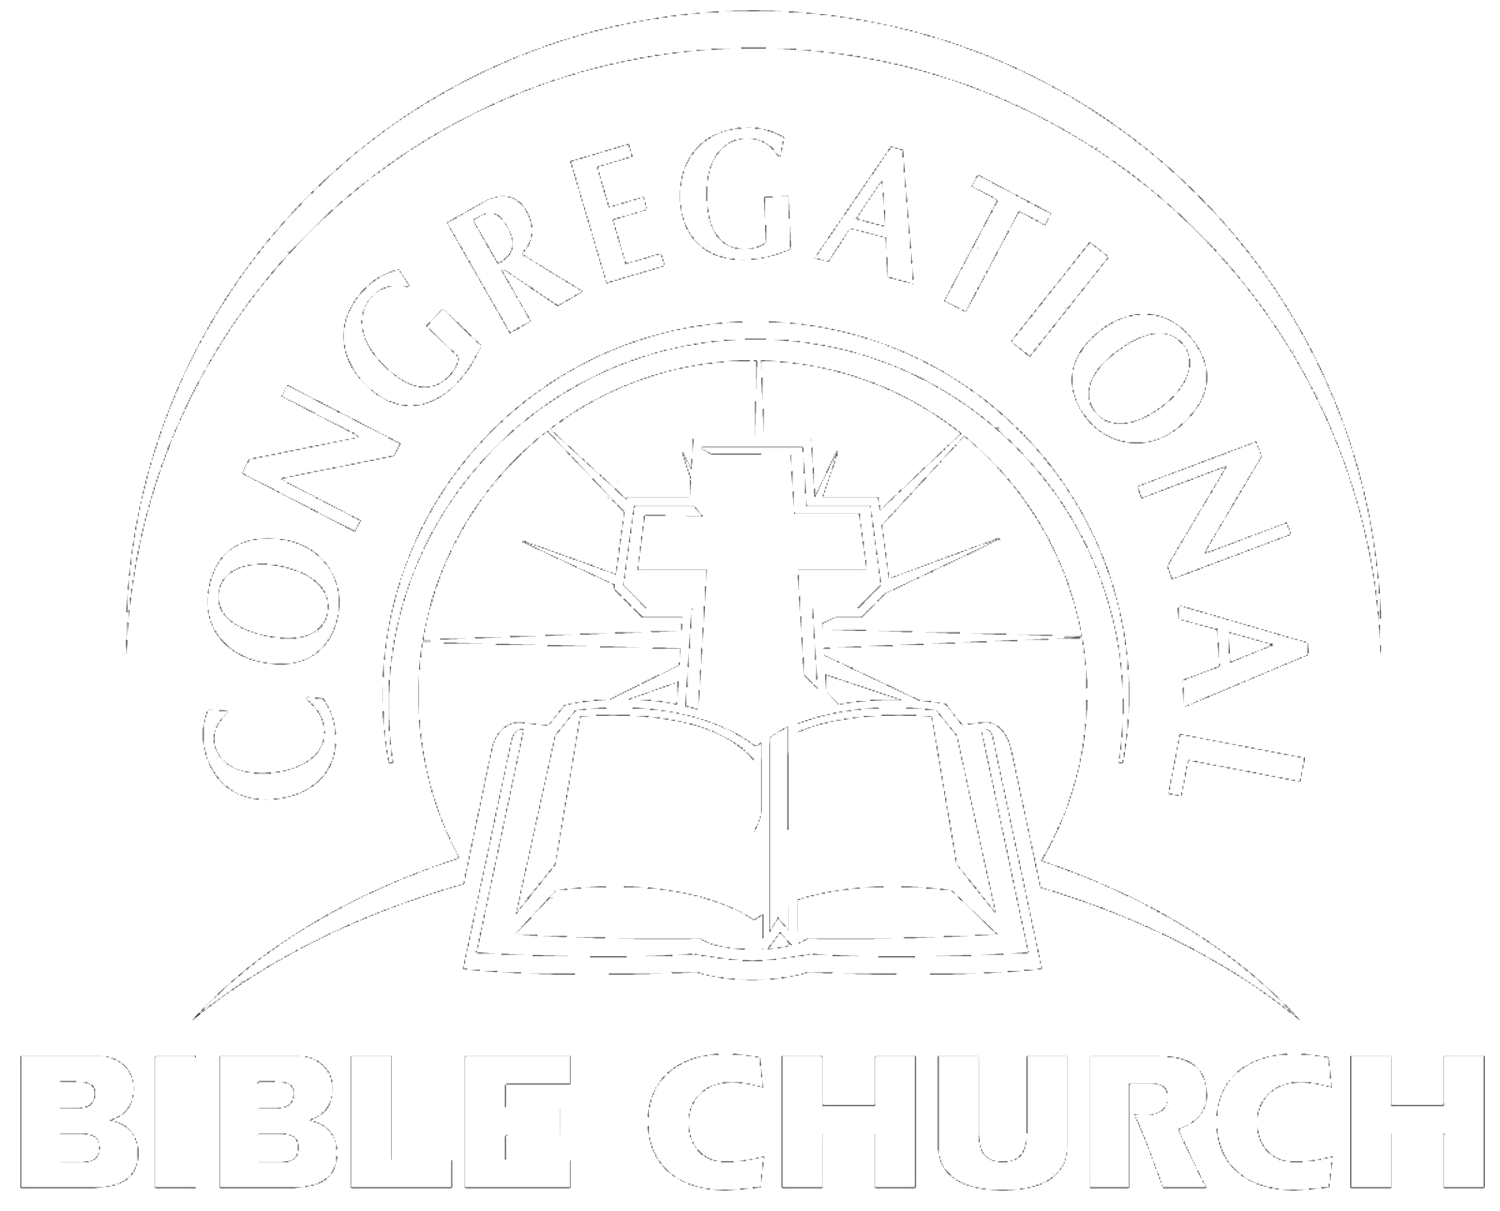 Congregational Bible Church